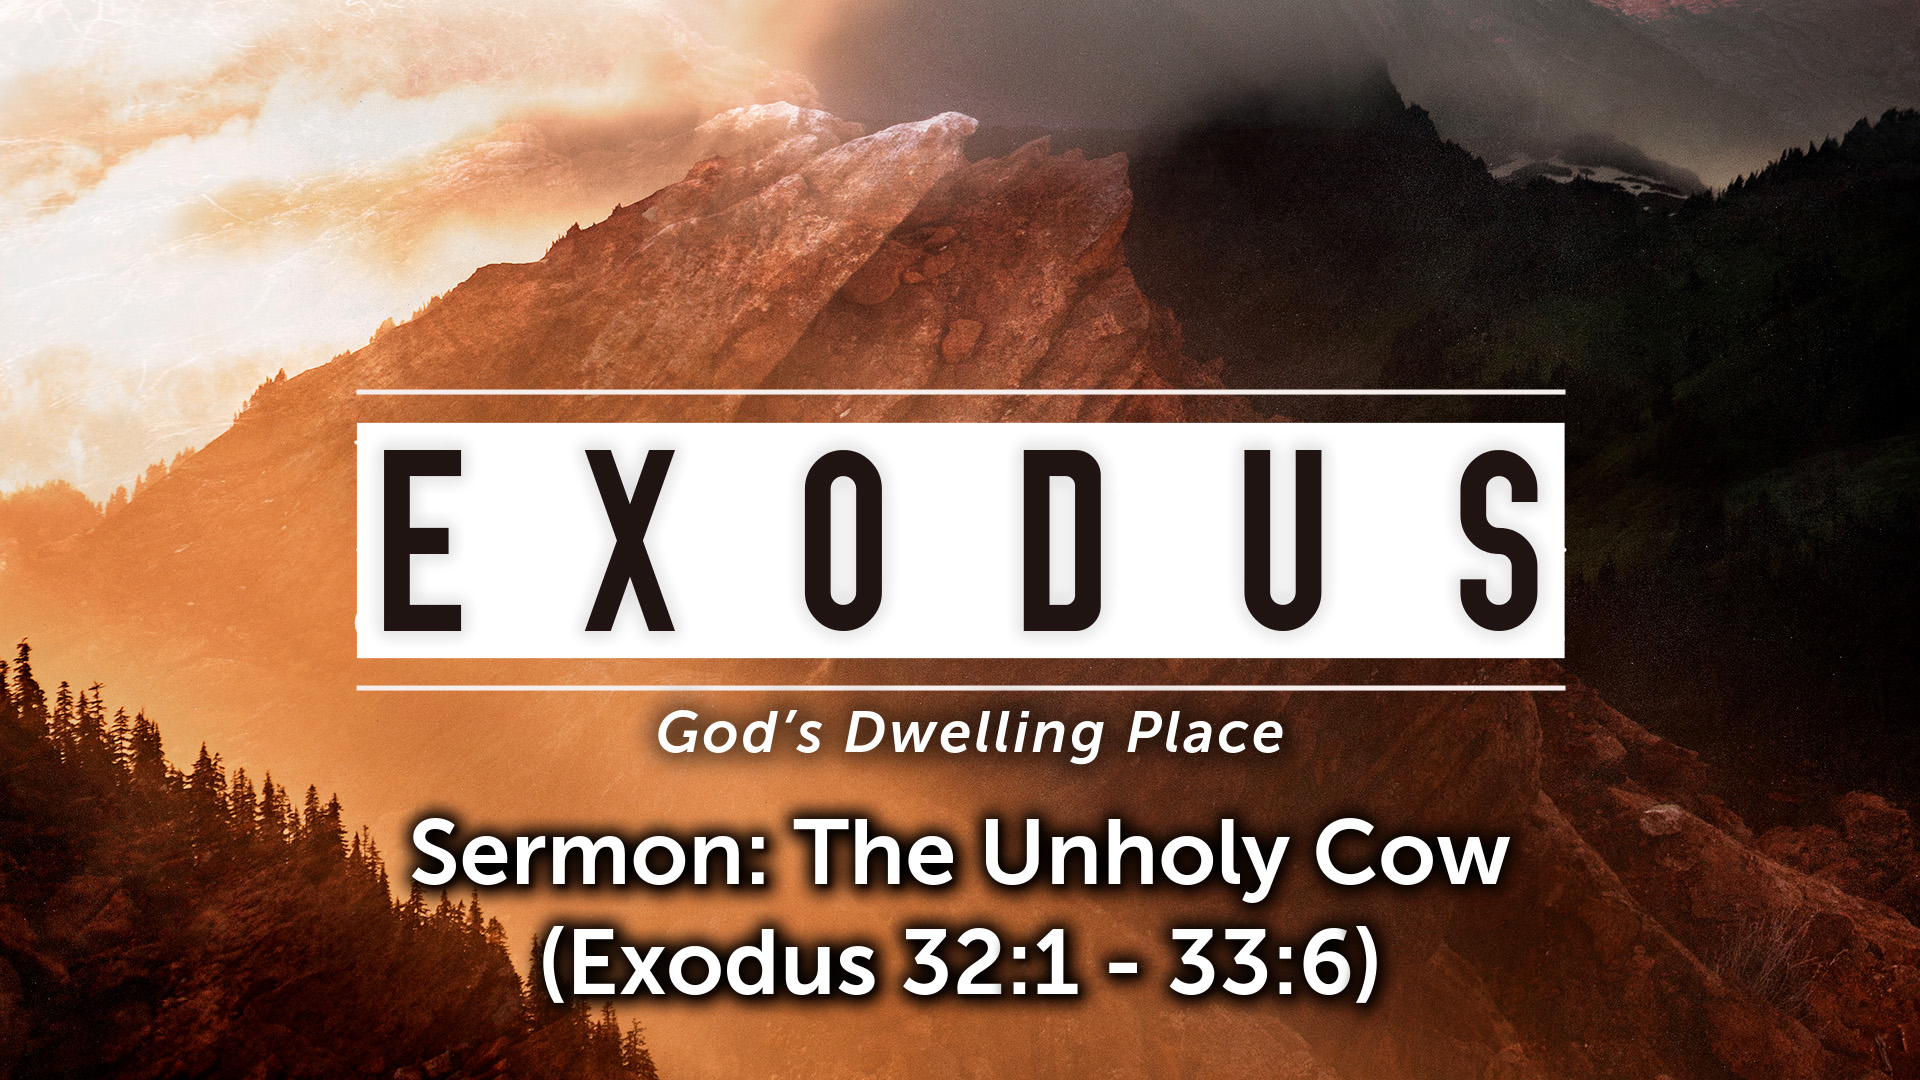 Image for the sermon The Unholy Cow